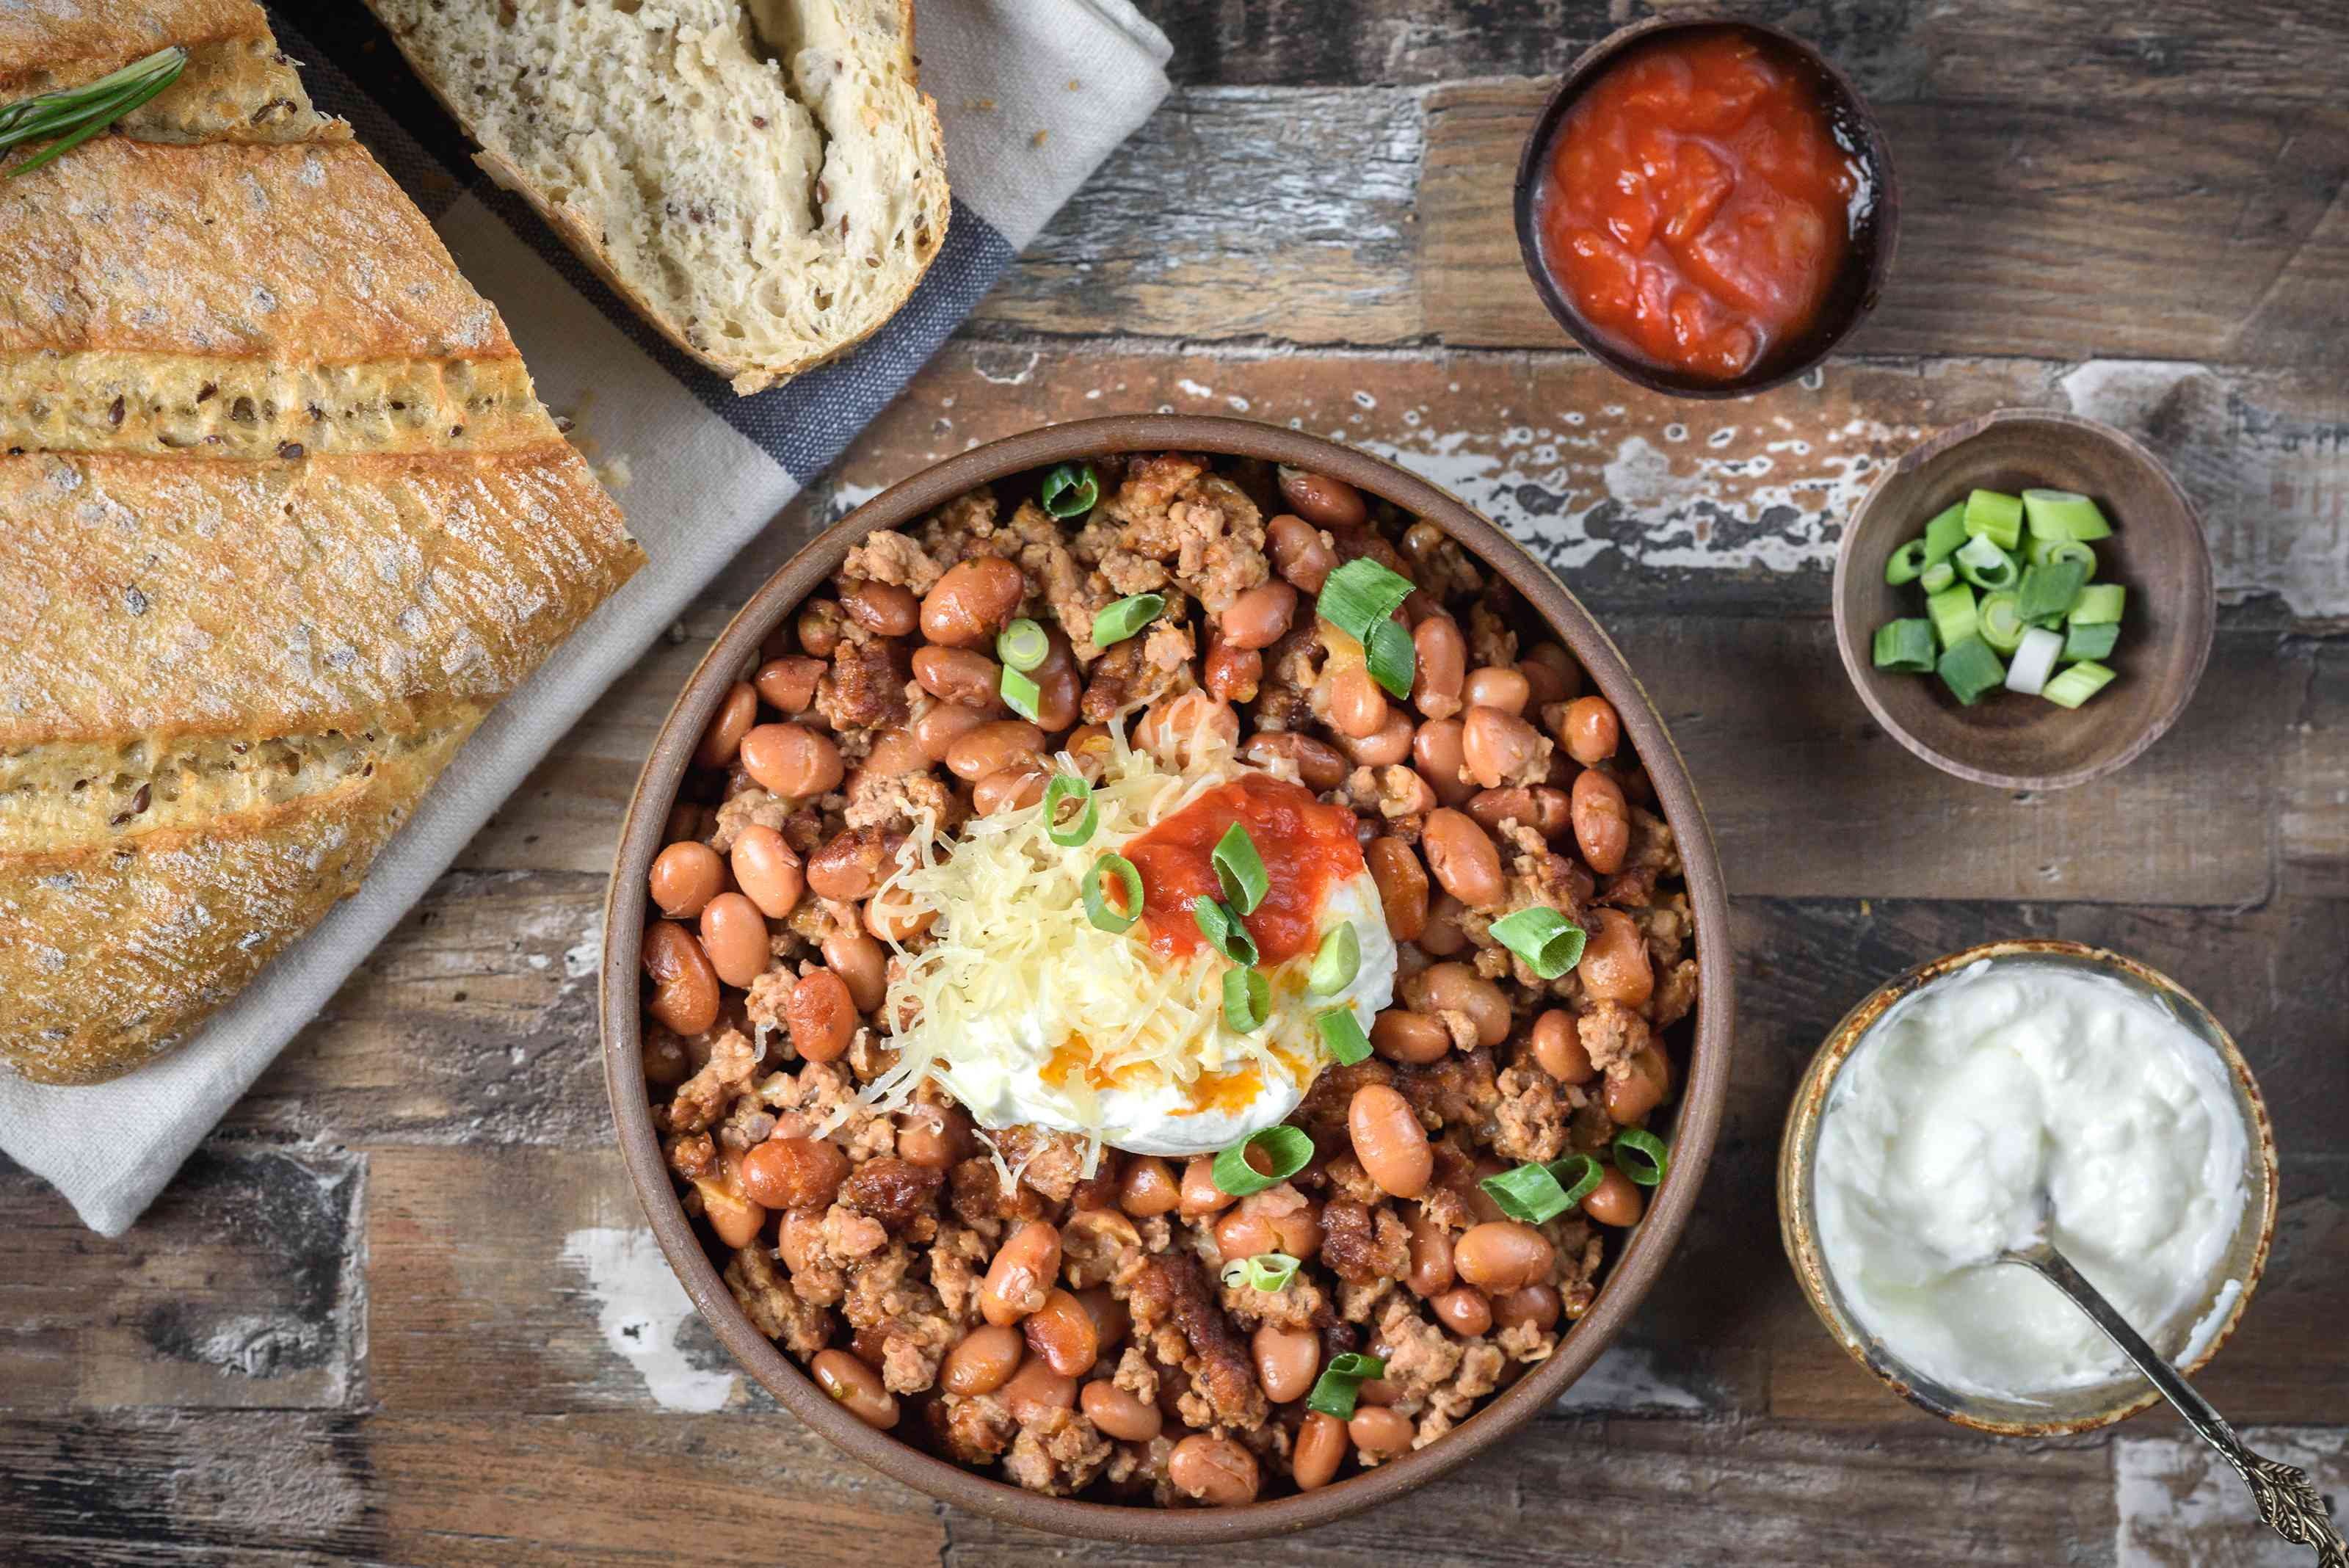 Slow cooker chili beans with ground beef